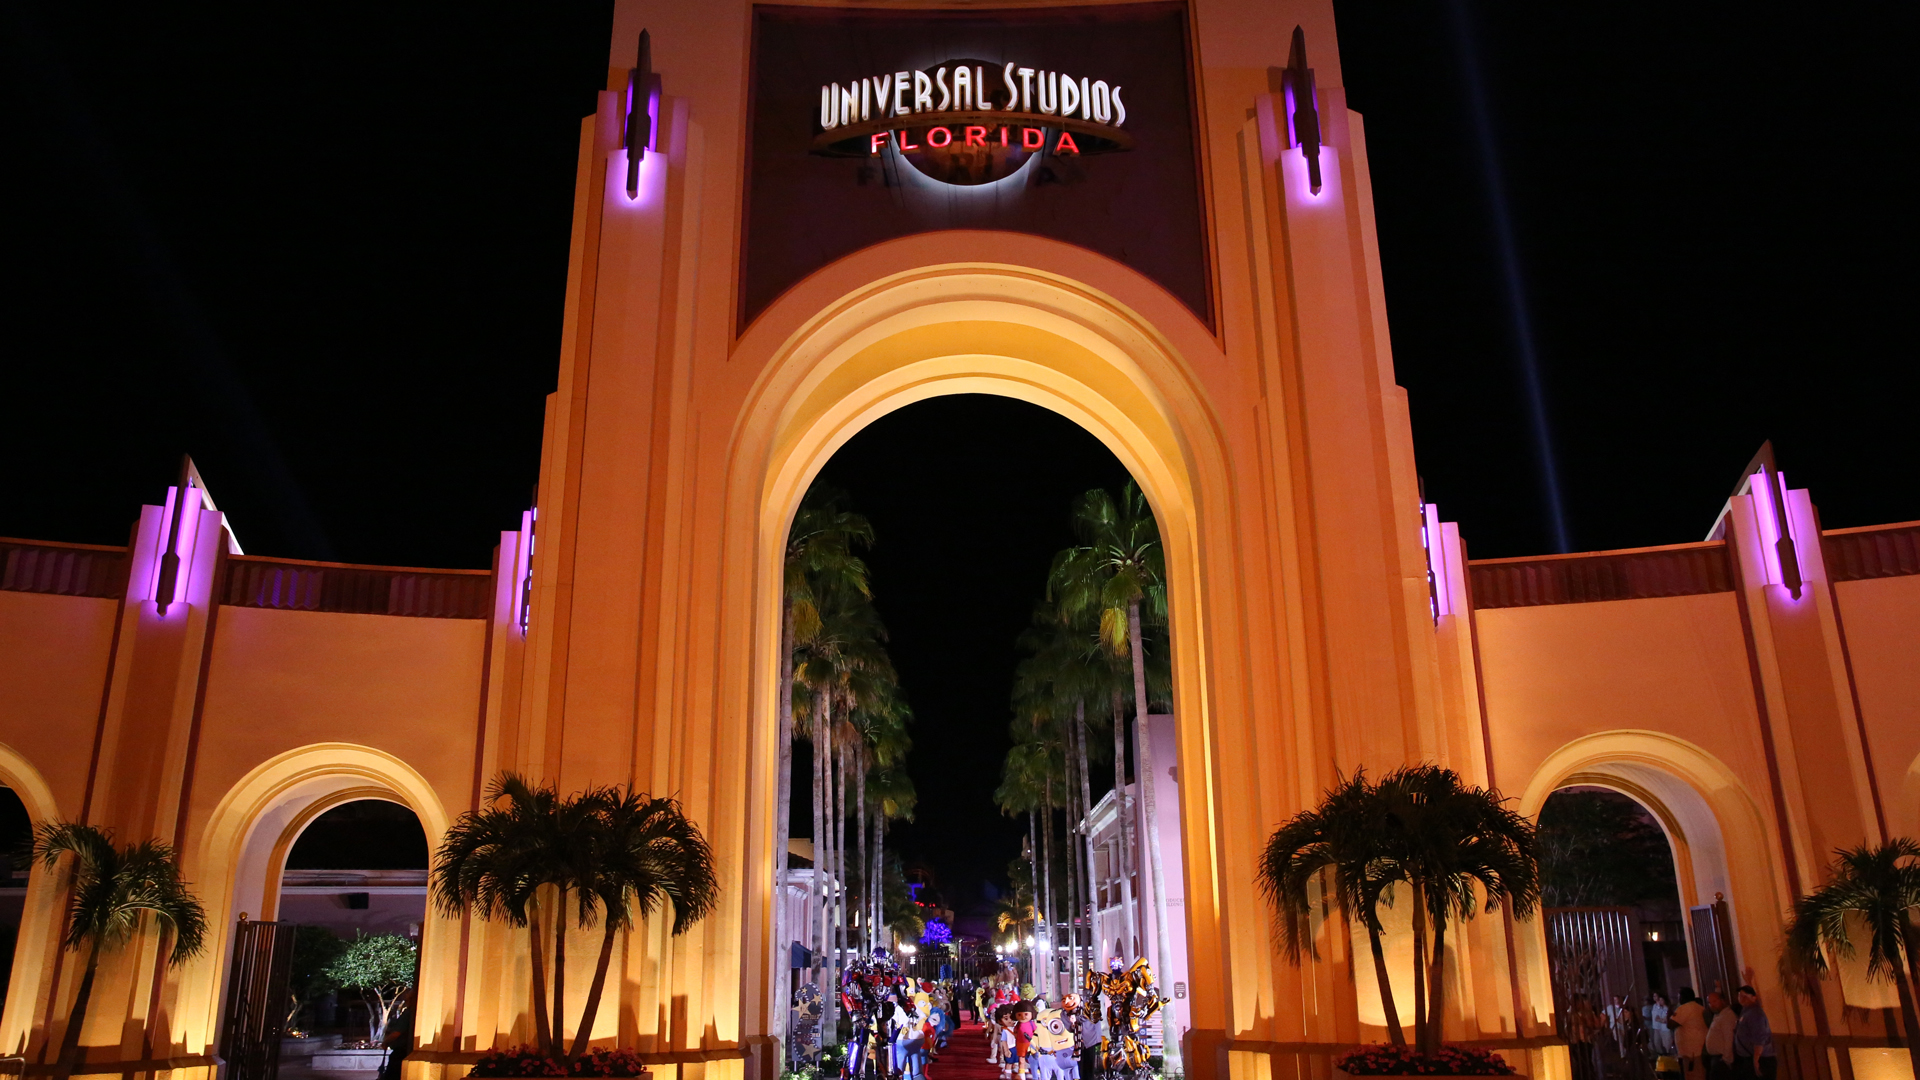 The entrance to Universal Studios in Orlando, Florida is seen in a file photo. (Credit: Douglas Gorenstein/NBC/NBCU Photo Bank via Getty Images)